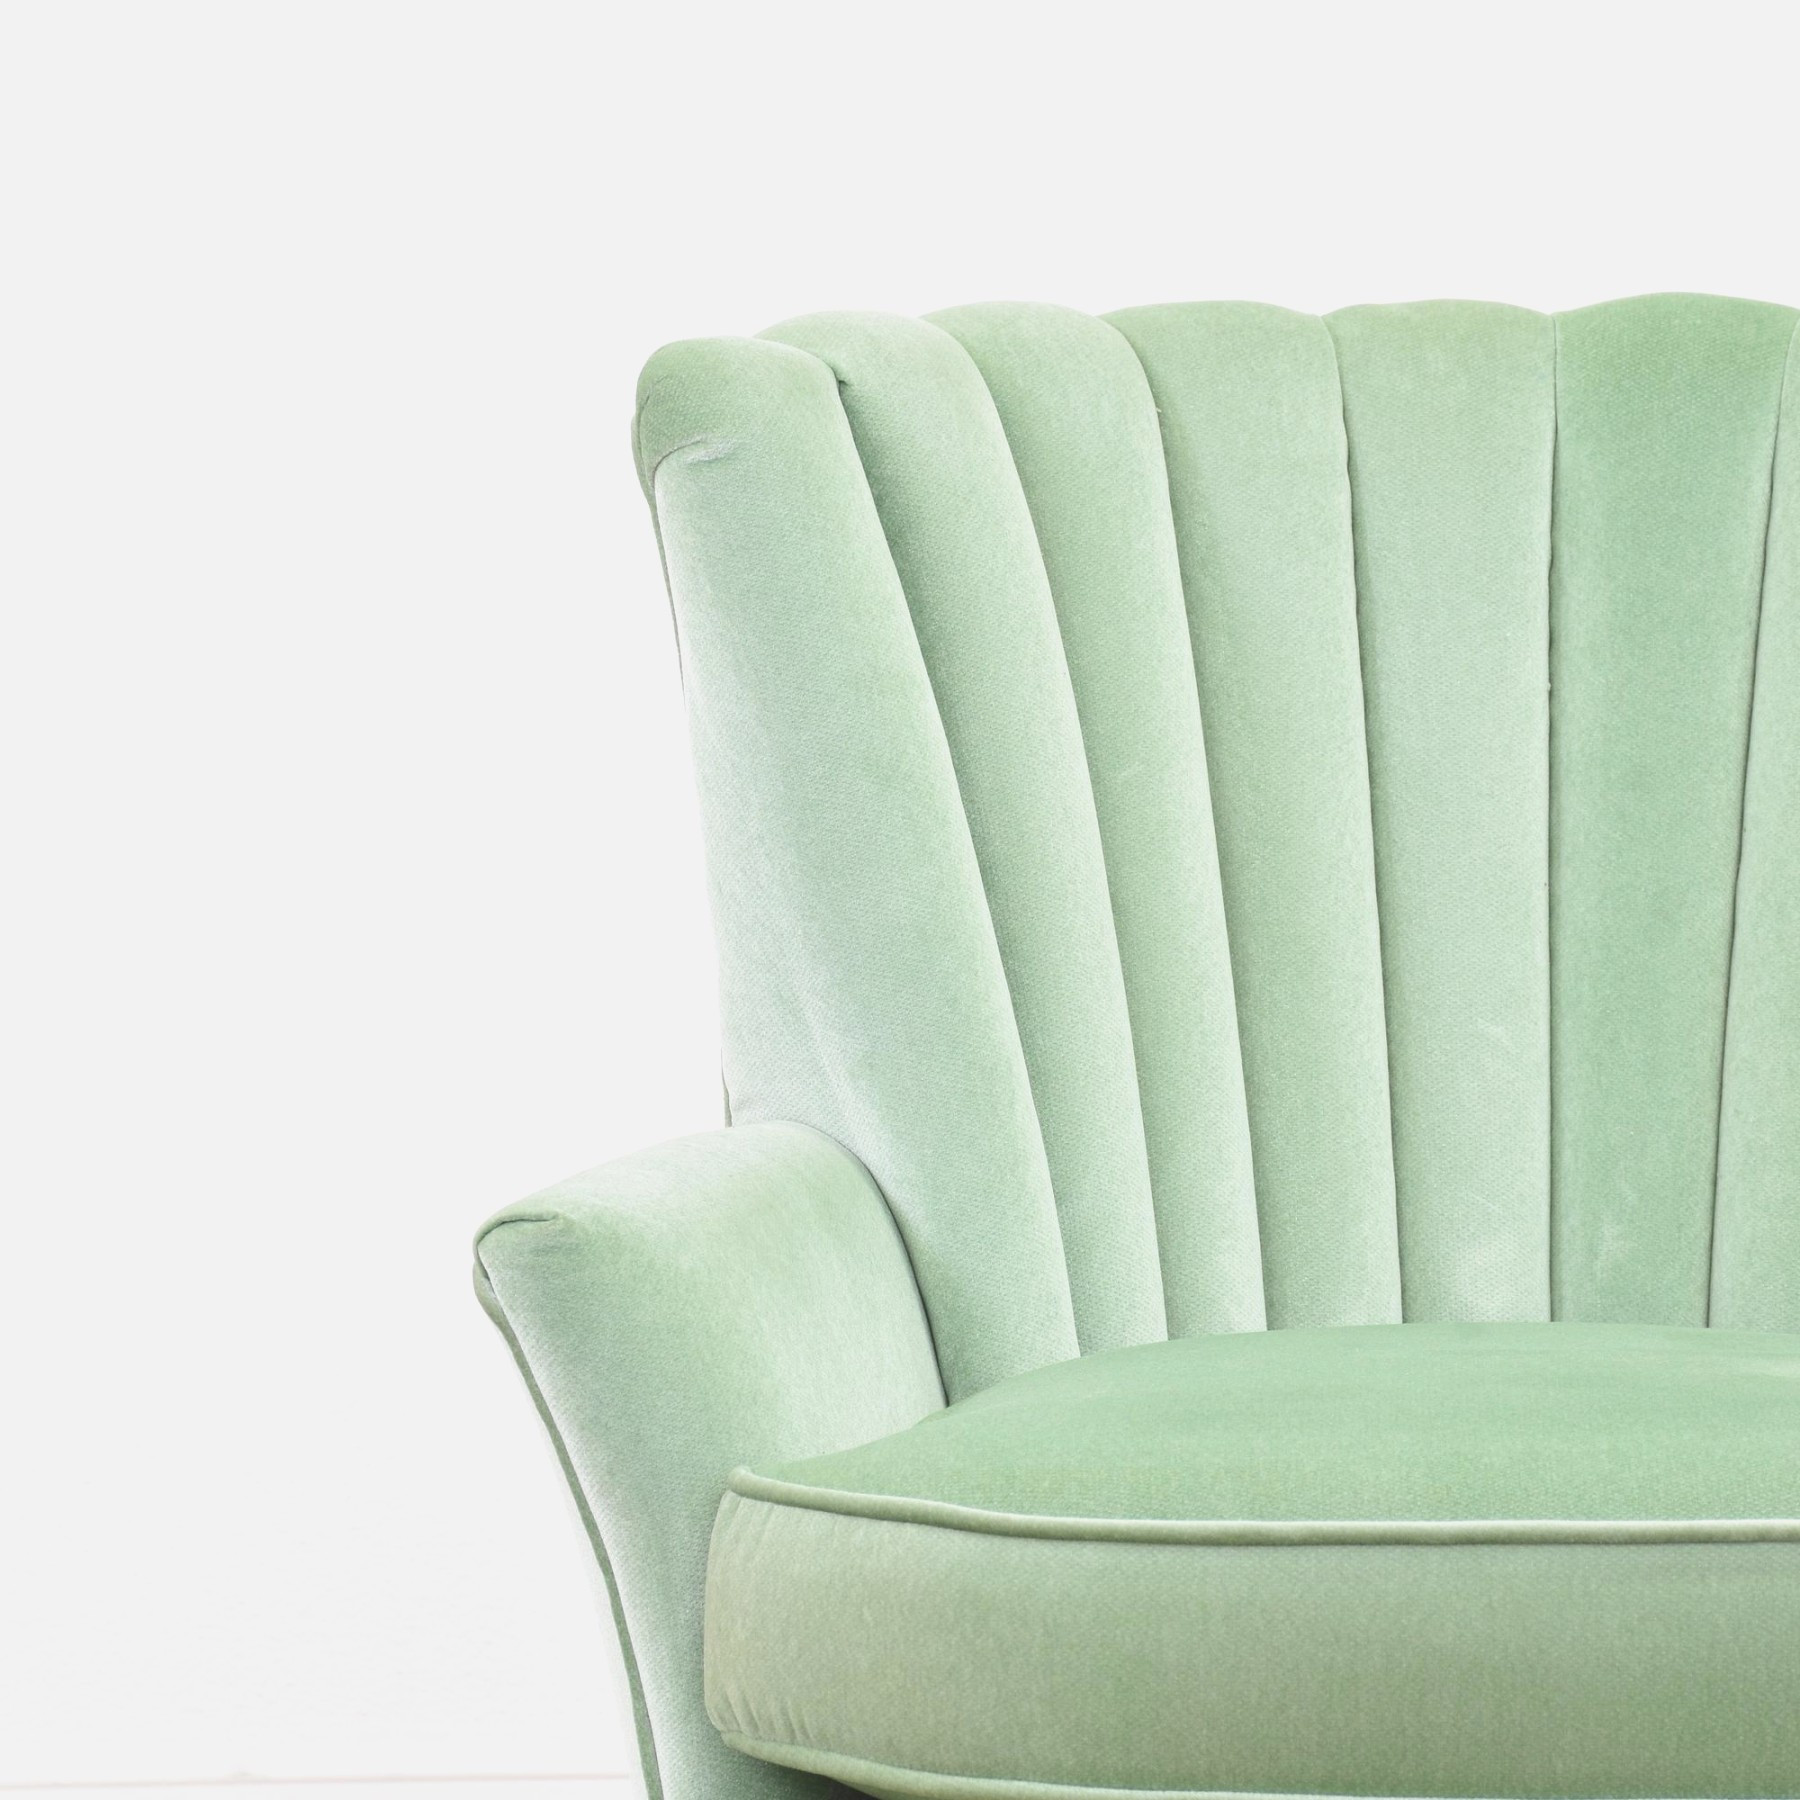 mint green accent chair scalabeyond seafoam armchair full size espanus black fabric tub ashley cuddler faux leather dining room chairs west elm lamps friday sofa garden table car